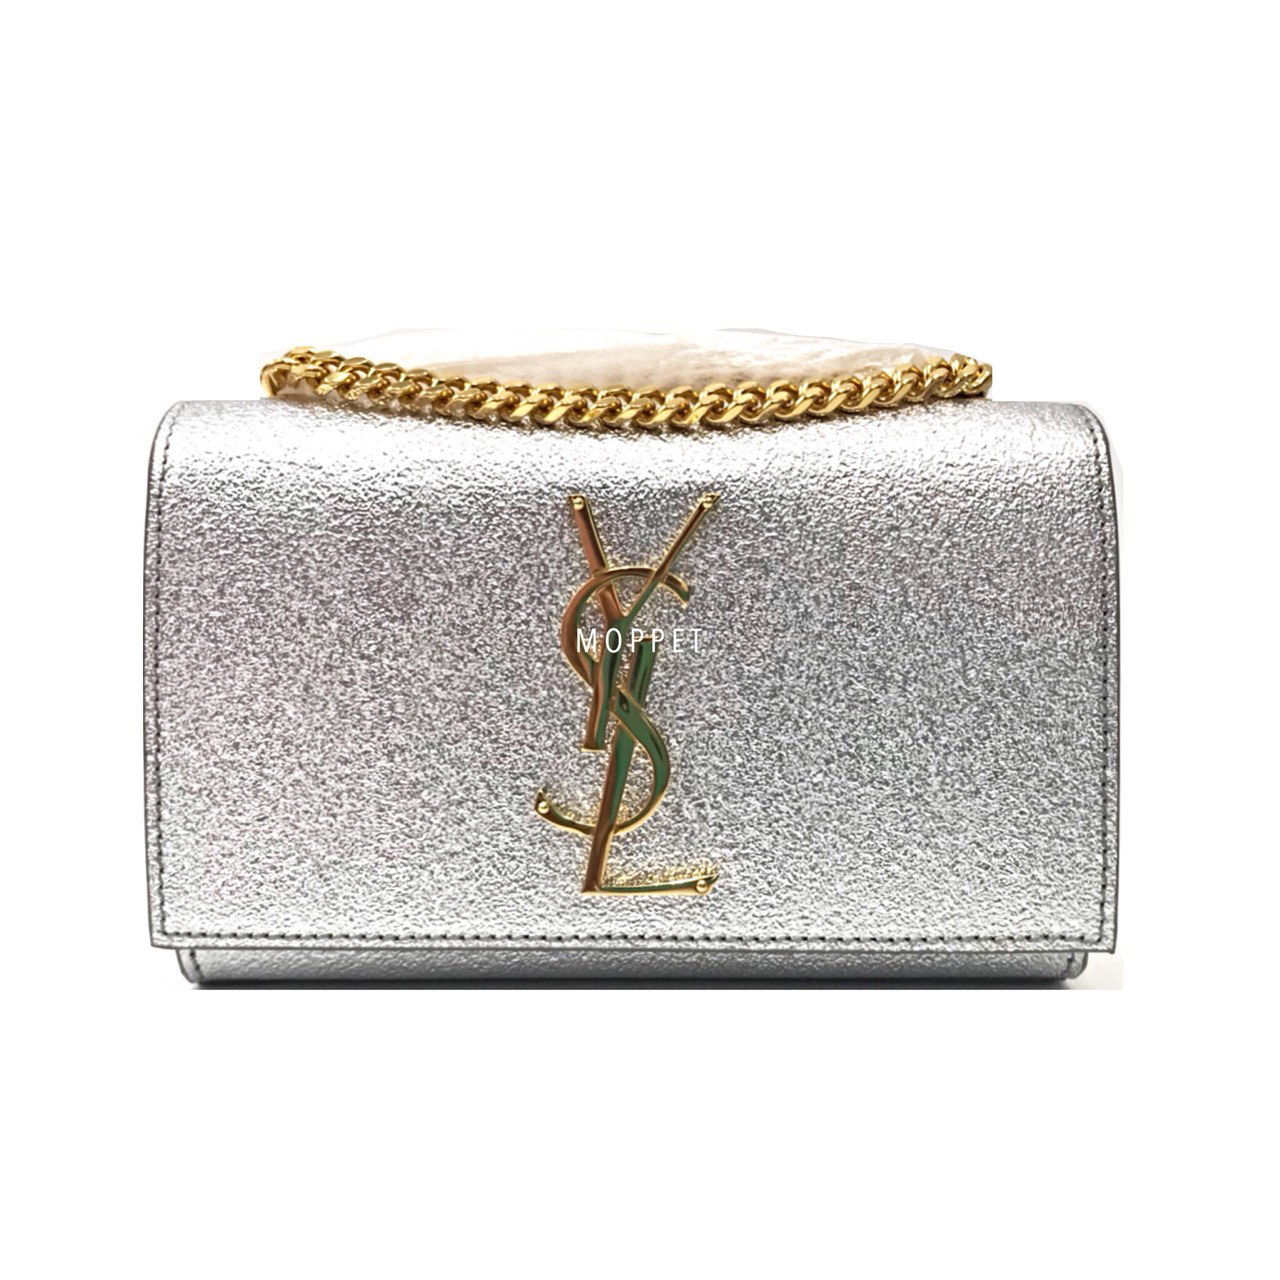 New YSL Kate Mini Bag in Silver Leather GHW